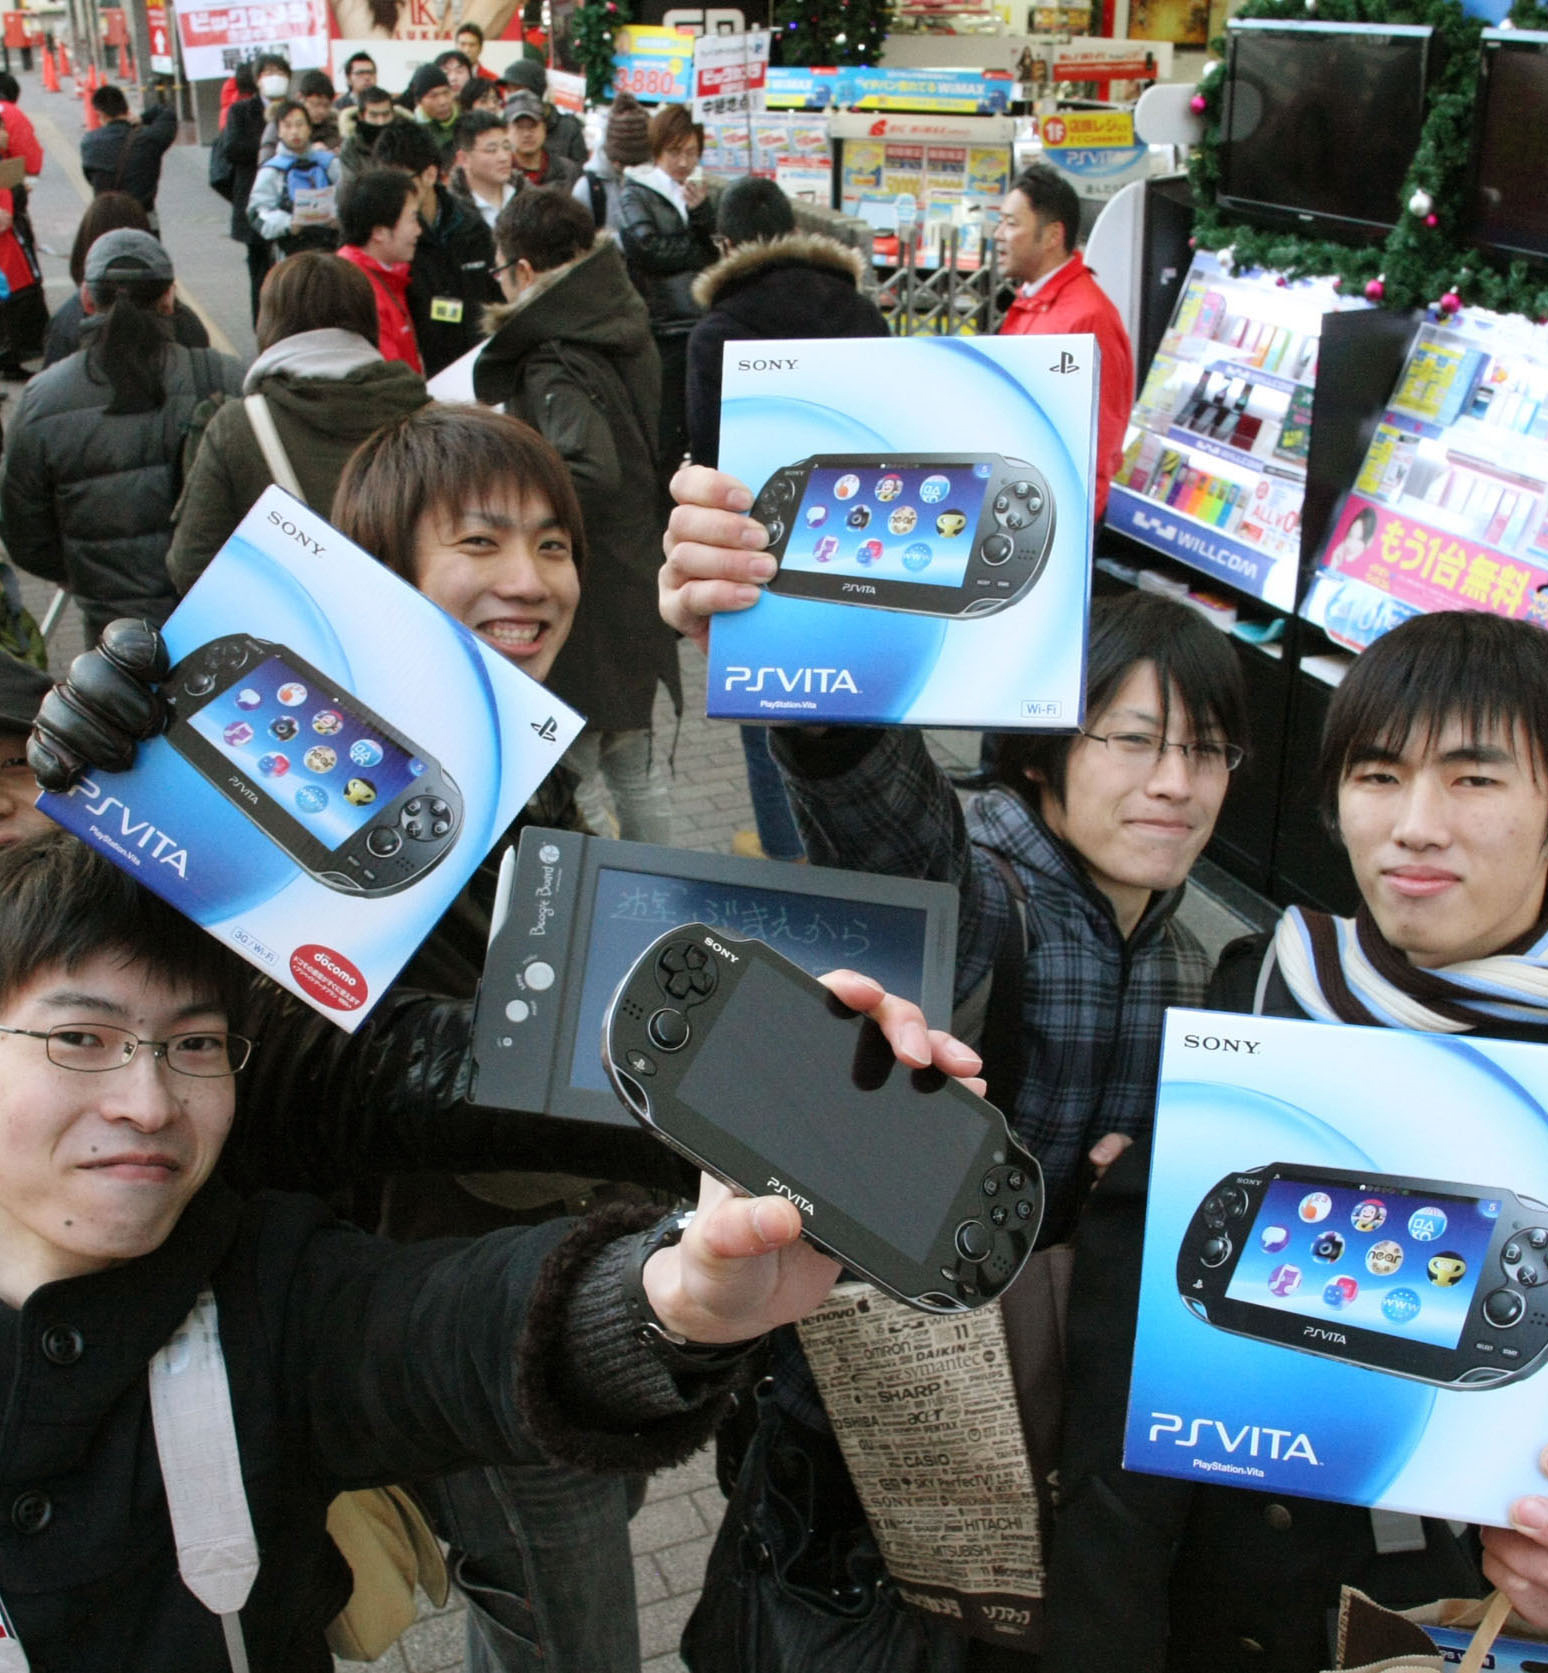 Console games expected to stage comeback thanks to 3DS, Vita